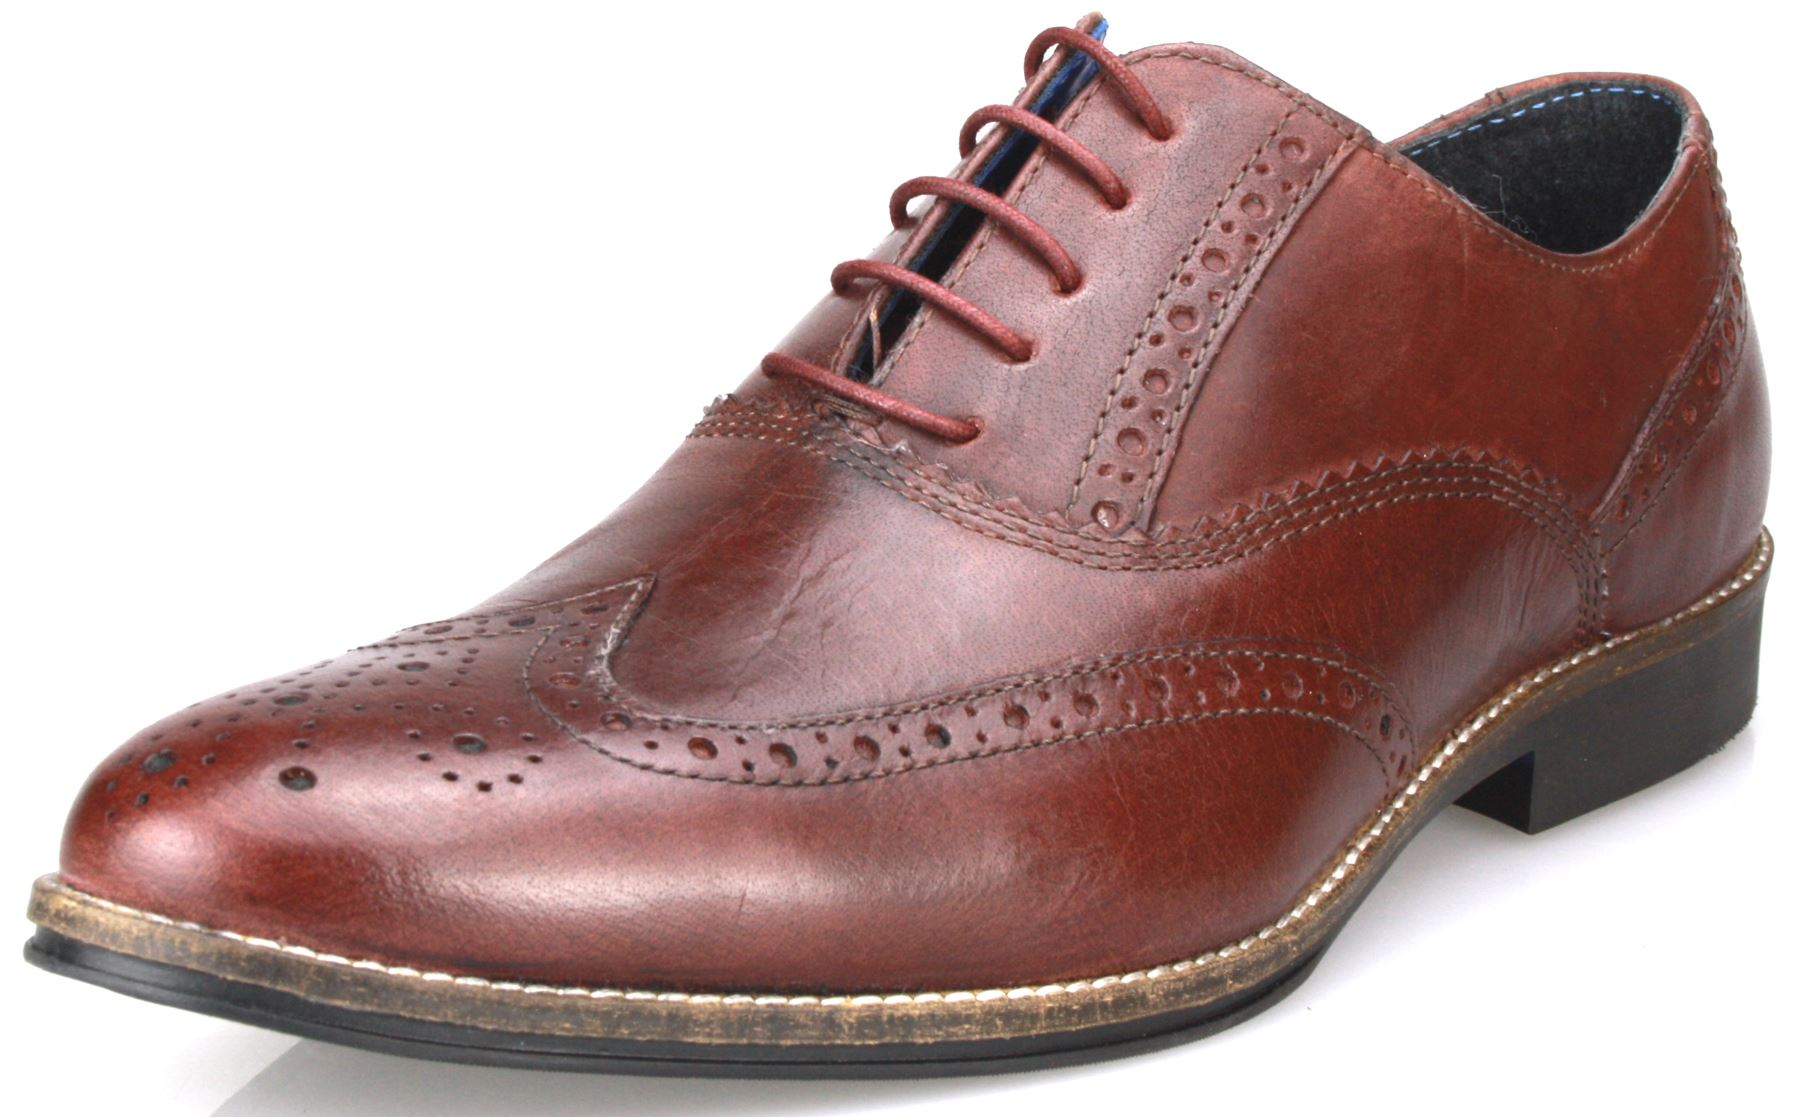 Red Tape Mens Leather Formal Brogues Lace Up Shoes in Tan Burgandy ... 466cec9da343